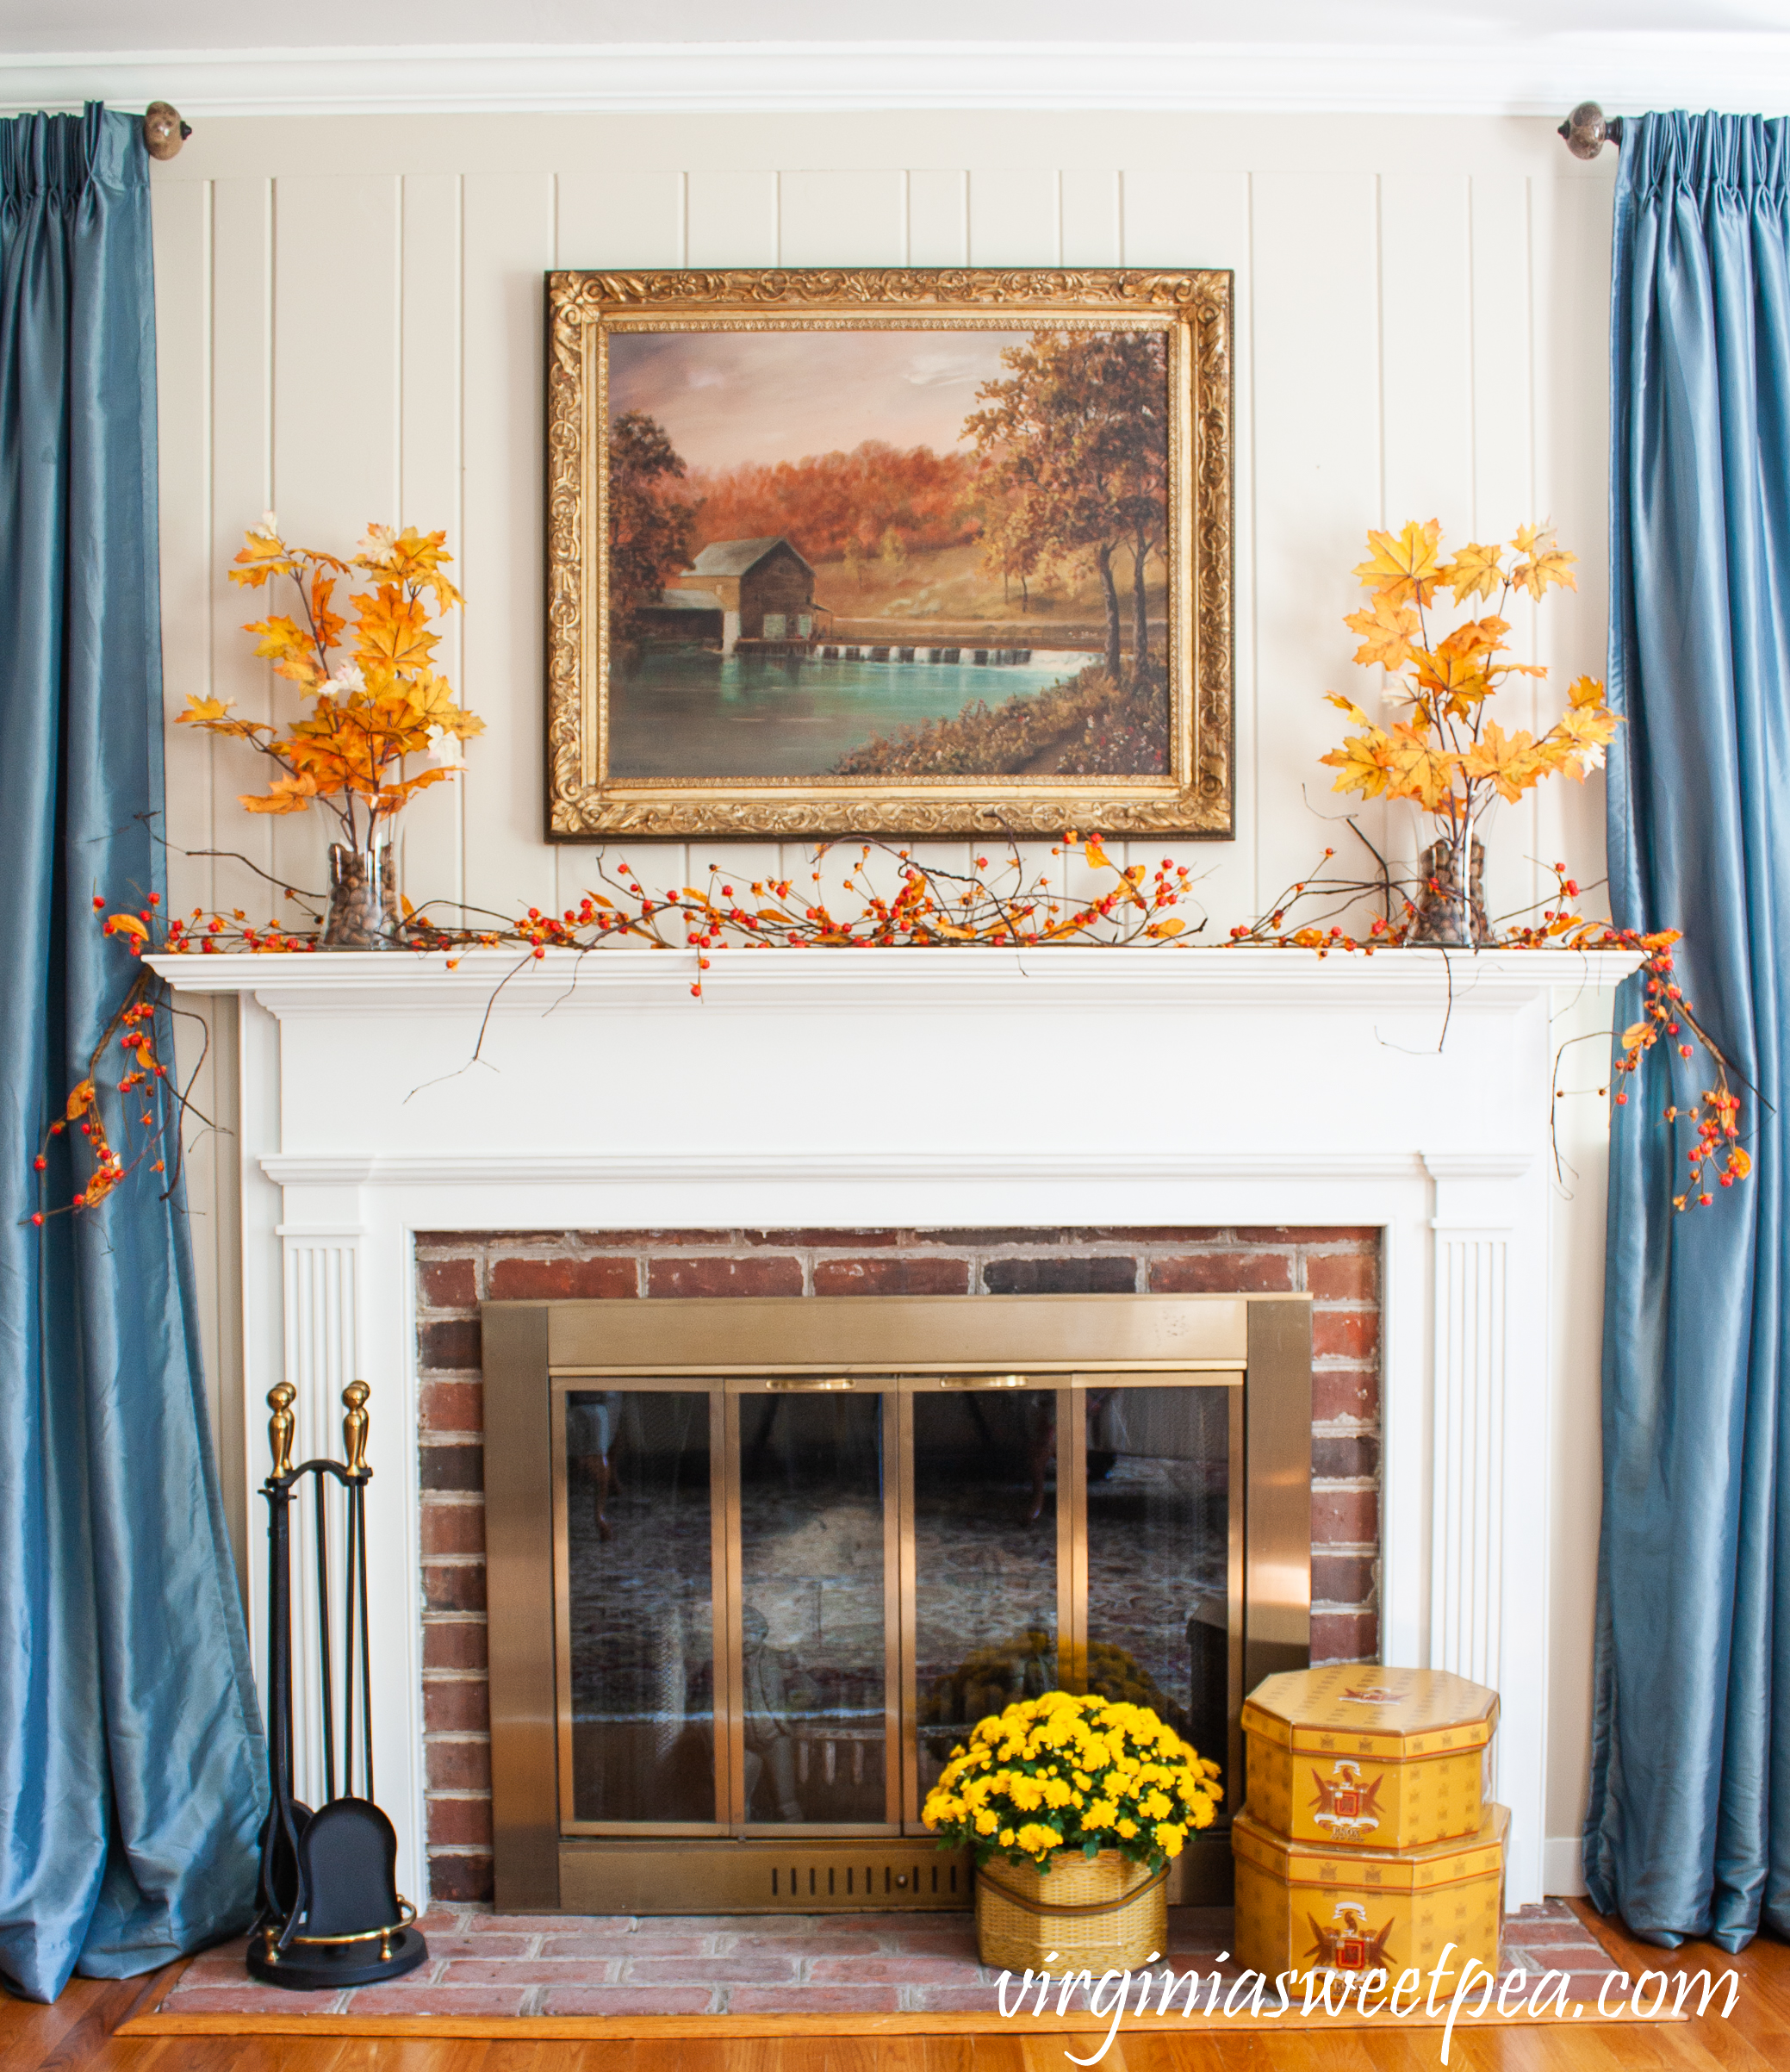 Traditional fall mantel with mill painting, bittersweet, leaves anchored in glass vases with acorns